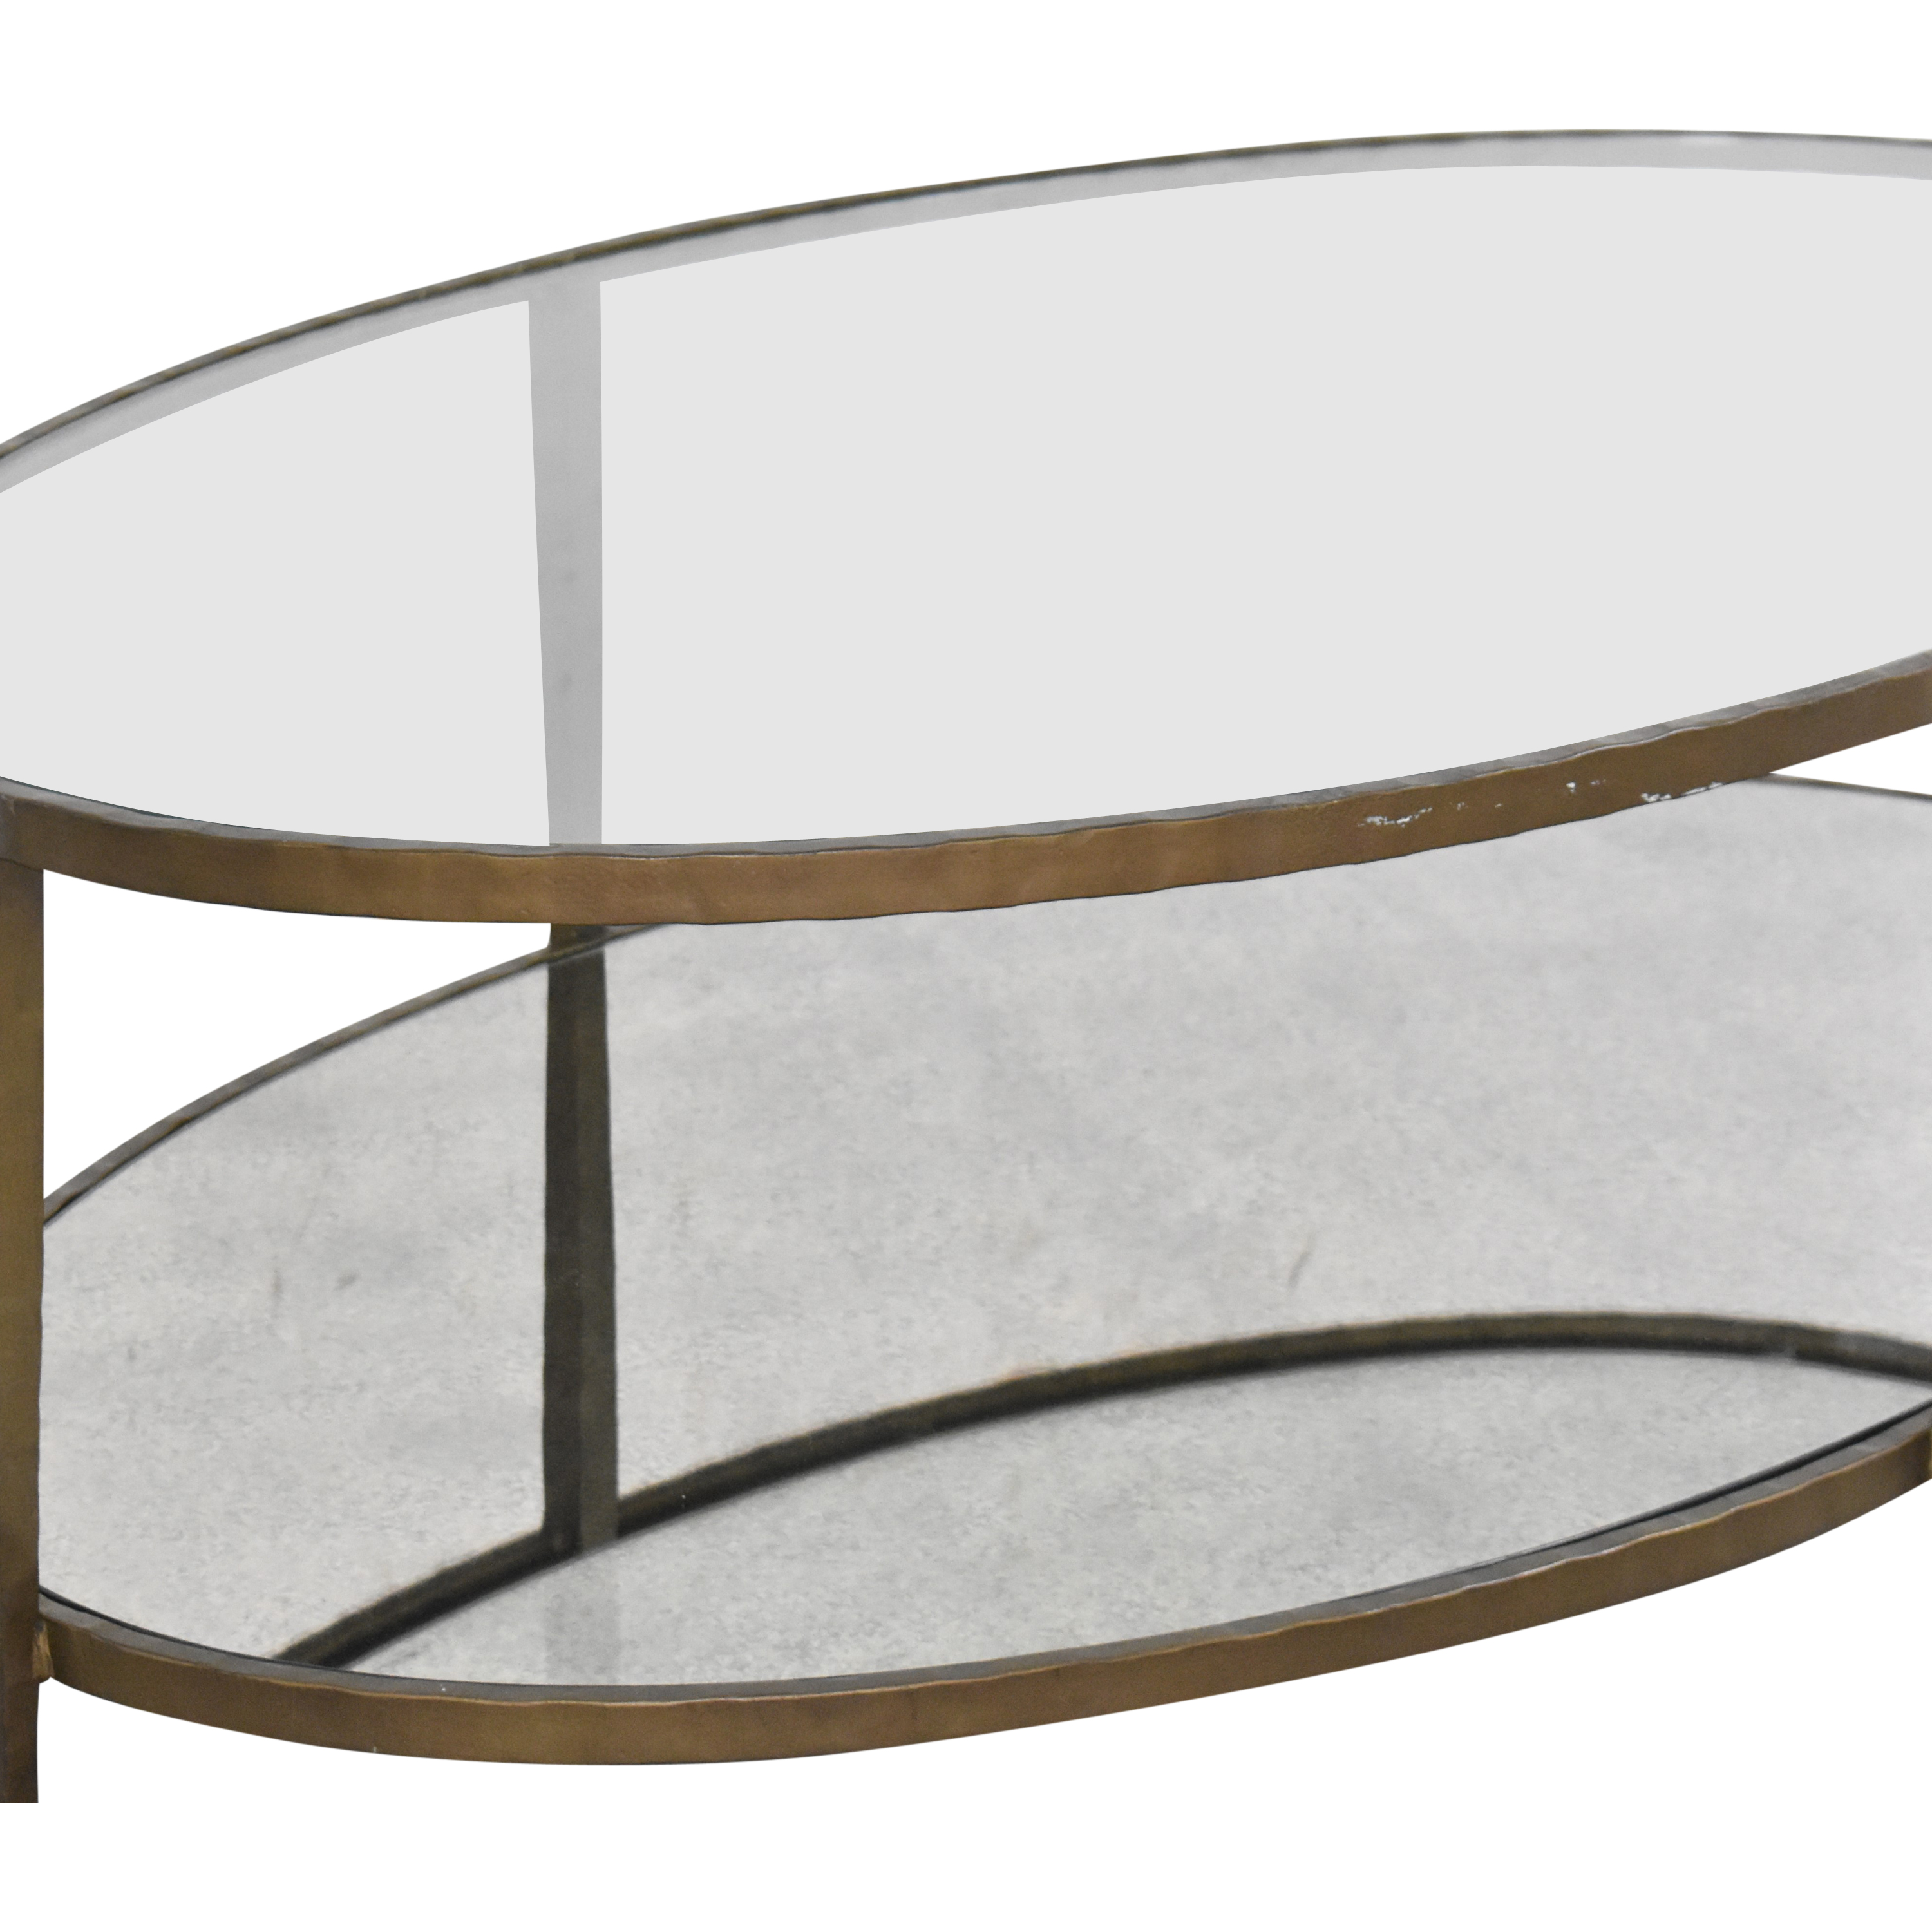 Crate & Barrel Crate & Barrel Clairemont Oval Coffee Table coupon